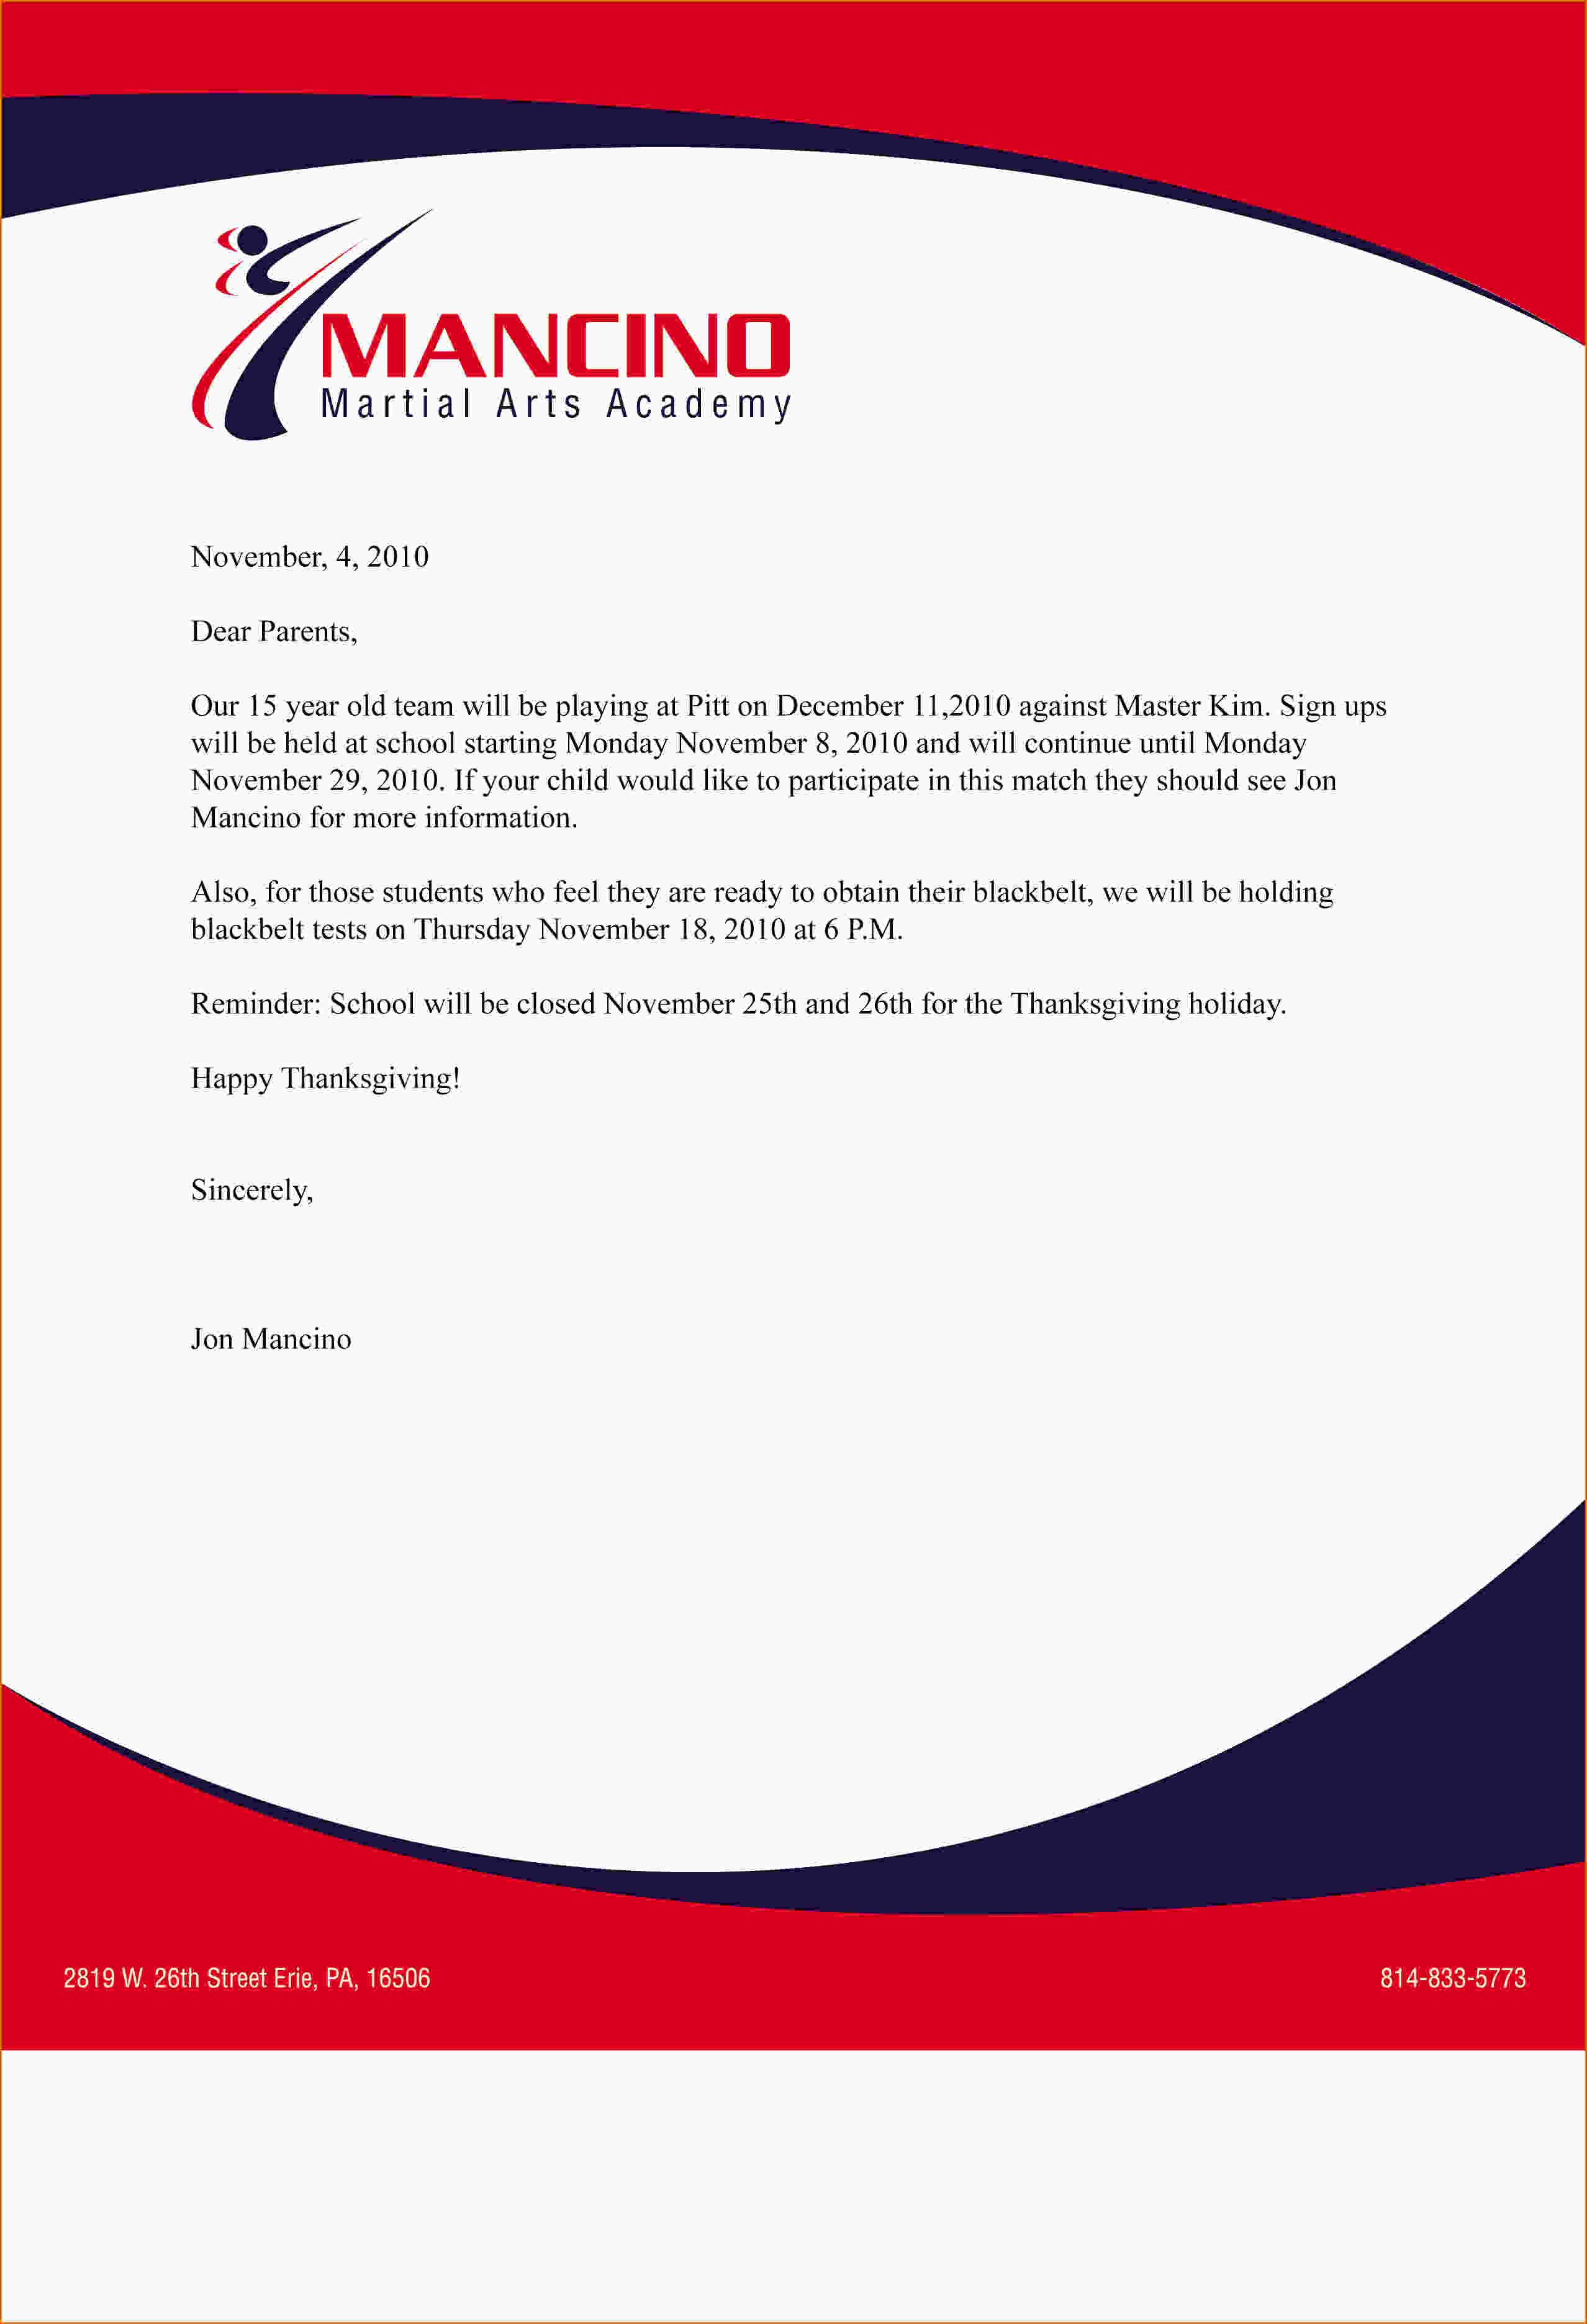 company letterhead example_4.jpg Business letter example